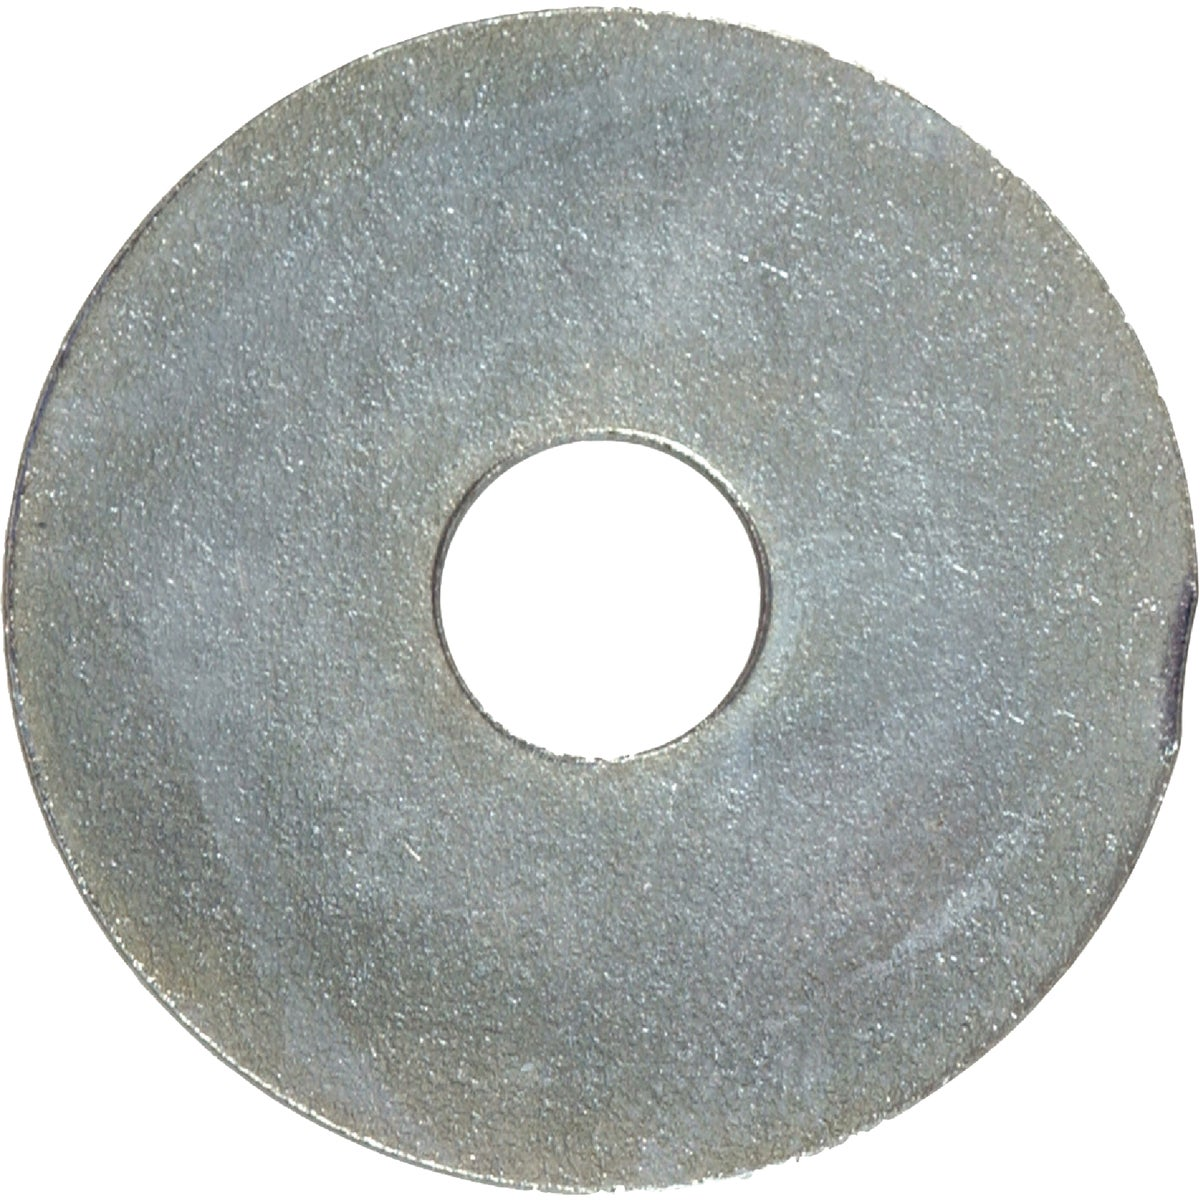 3/8X1-1/4 FENDER WASHER - 290033 by Hillman Fastener